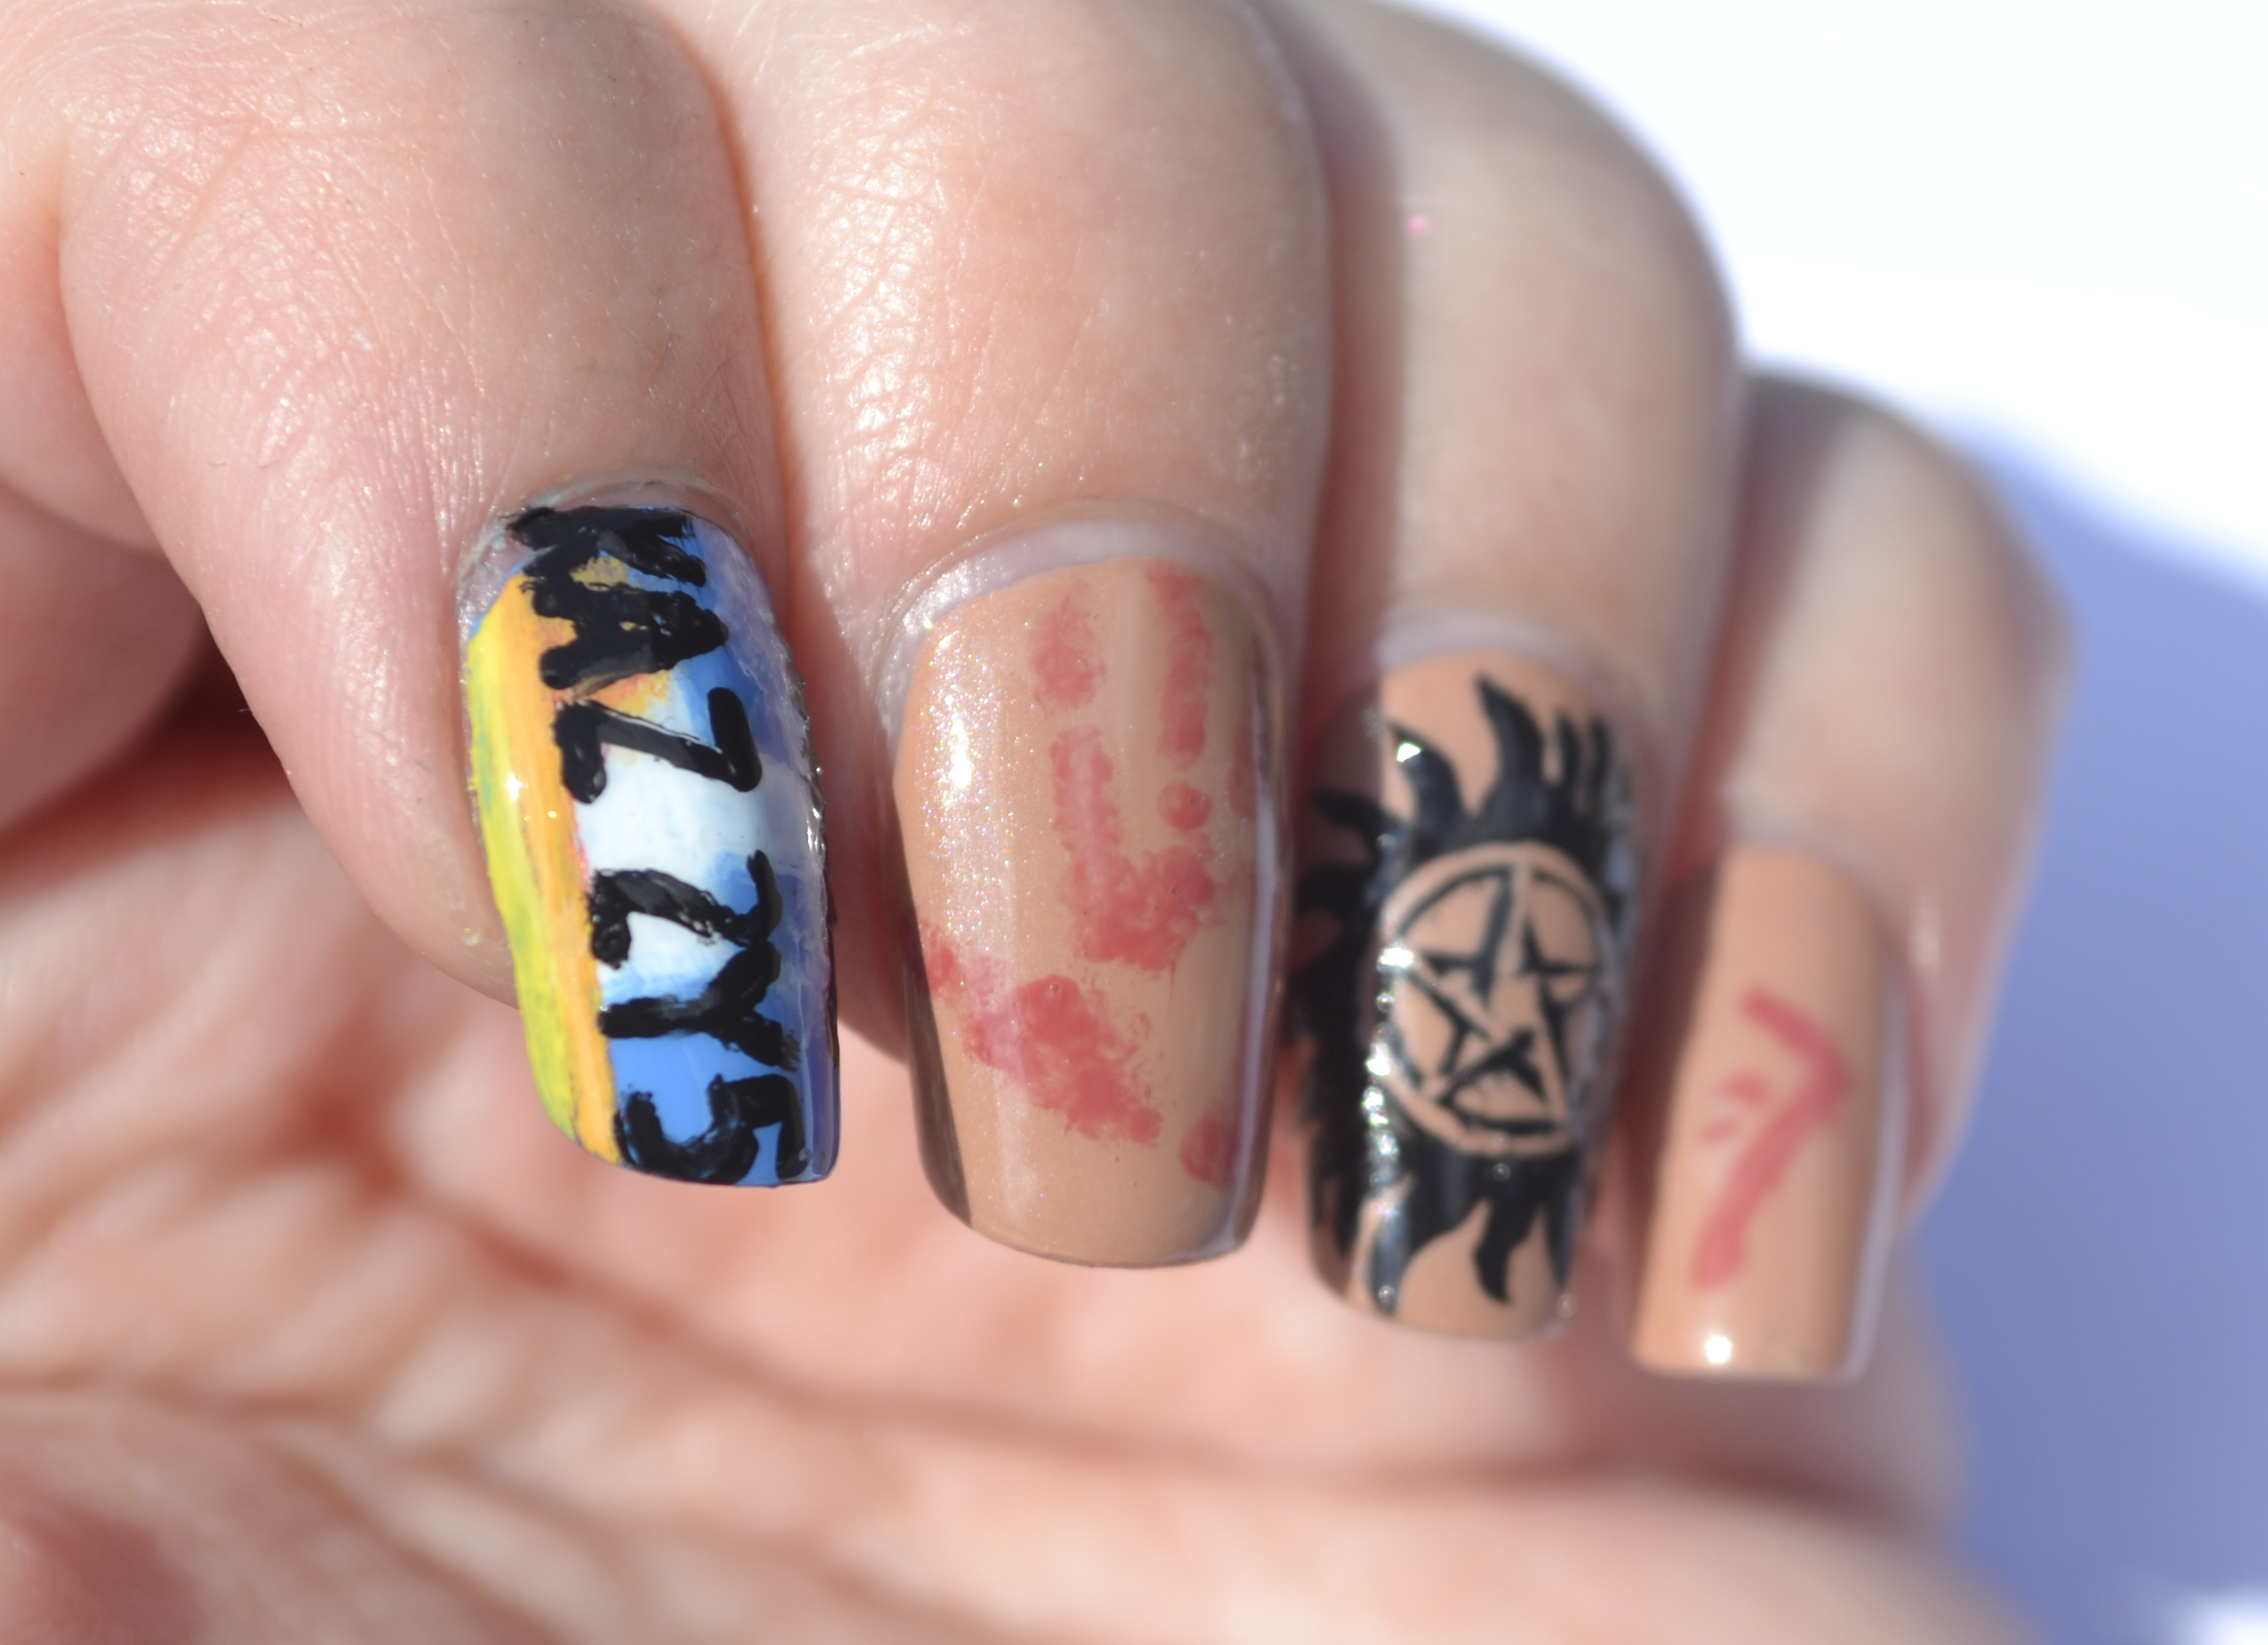 Supernatural nails nails the final frontier 31dc day 29 supernatural nails 2 prinsesfo Image collections